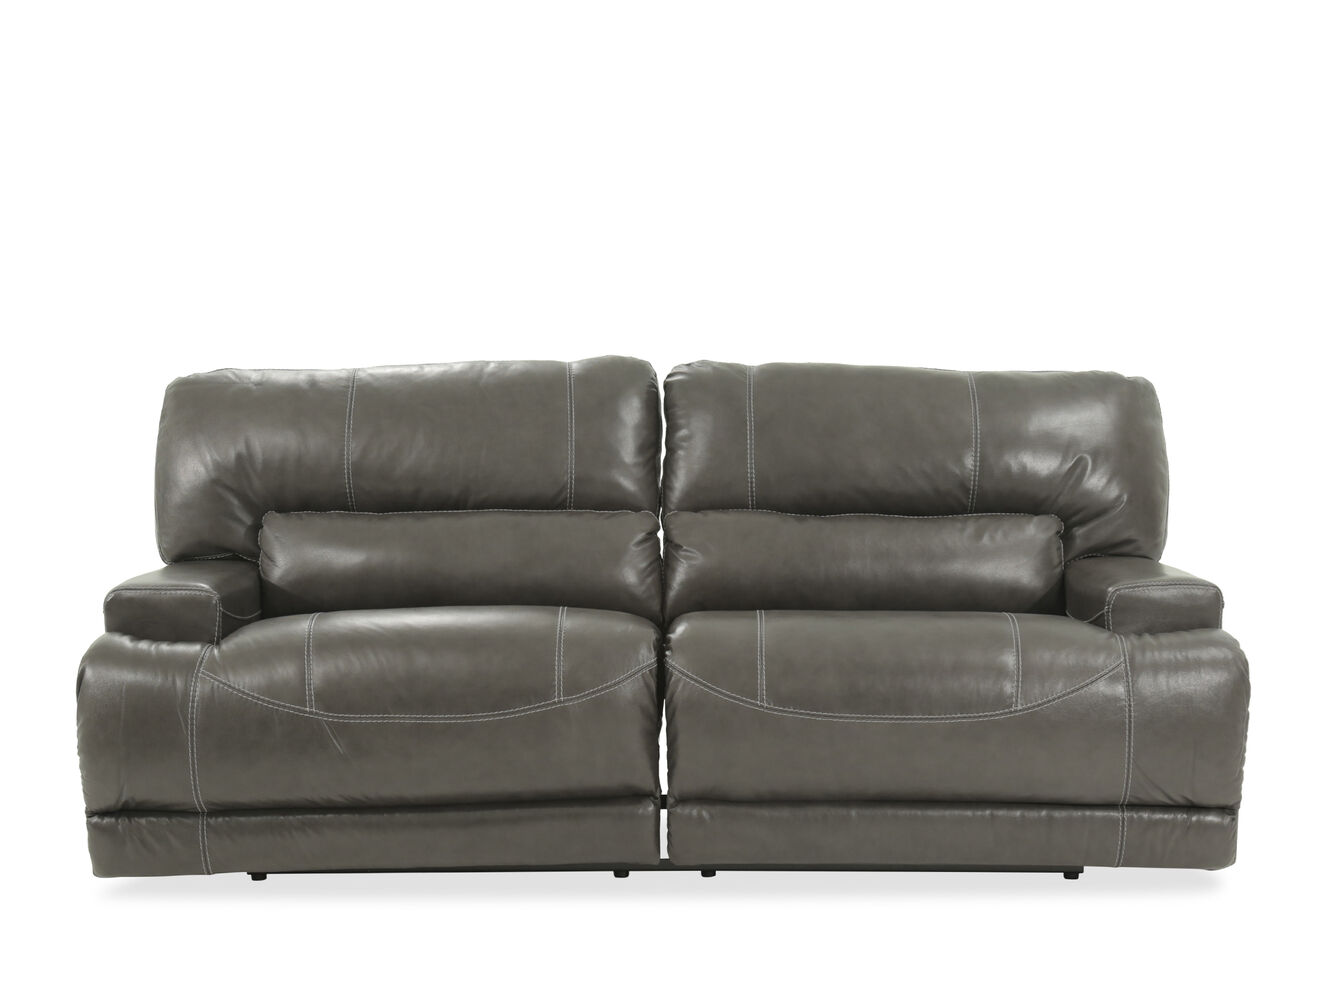 contemporary 79 power reclining sofa in gray mathis brothers furniture. Black Bedroom Furniture Sets. Home Design Ideas